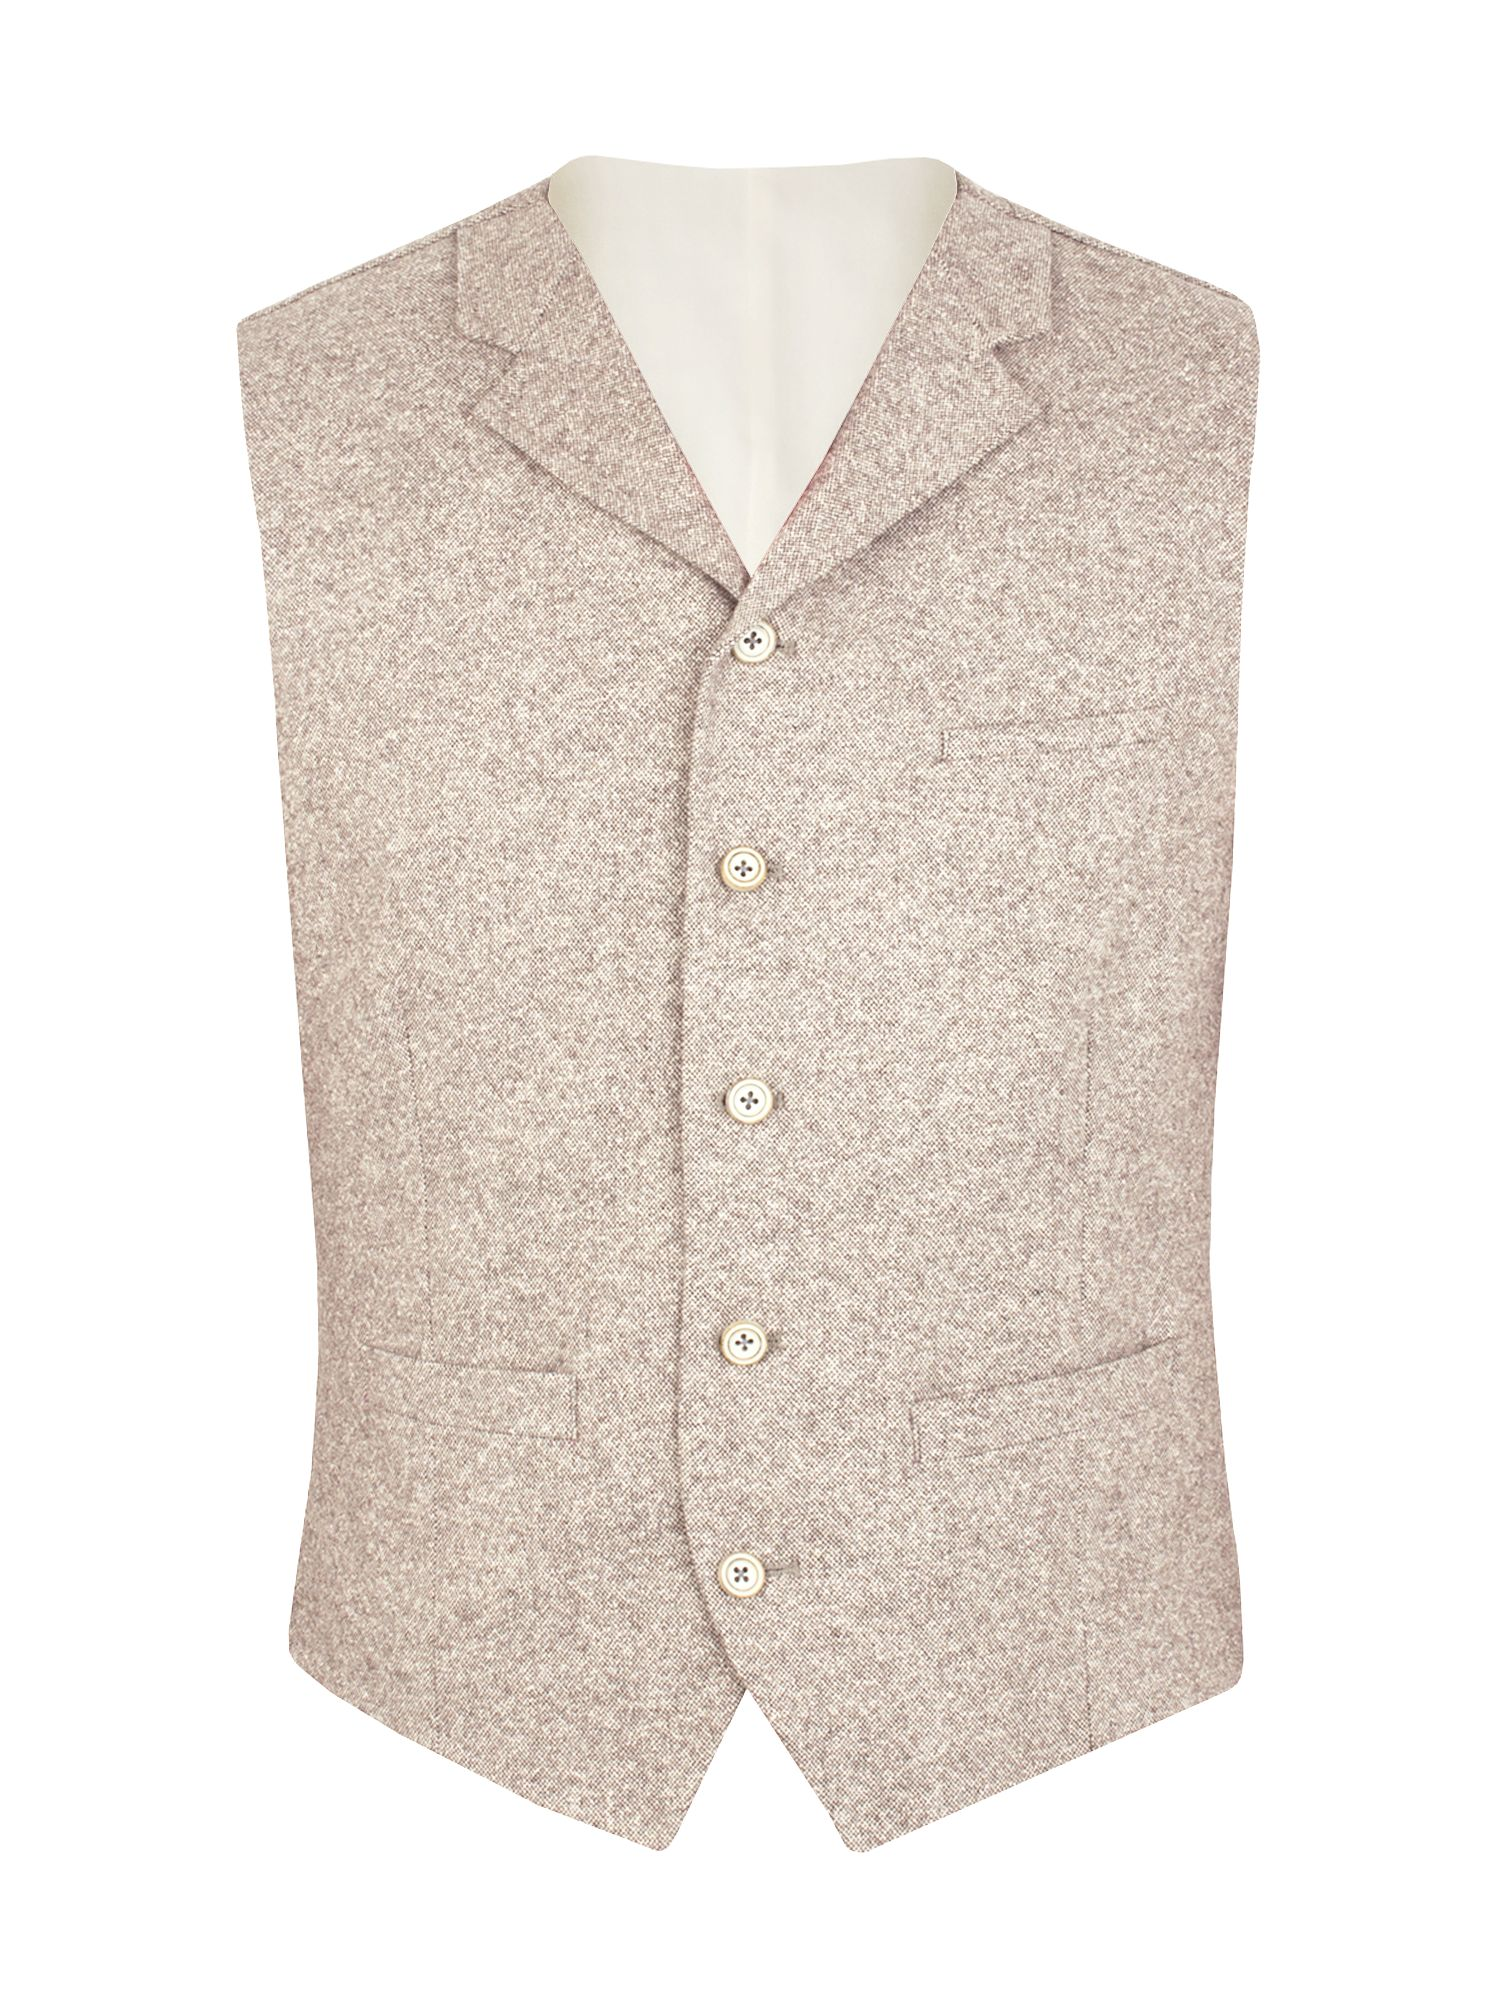 Men's Vintage Inspired Vests Mens Gibson Stone donegal vest £55.20 AT vintagedancer.com